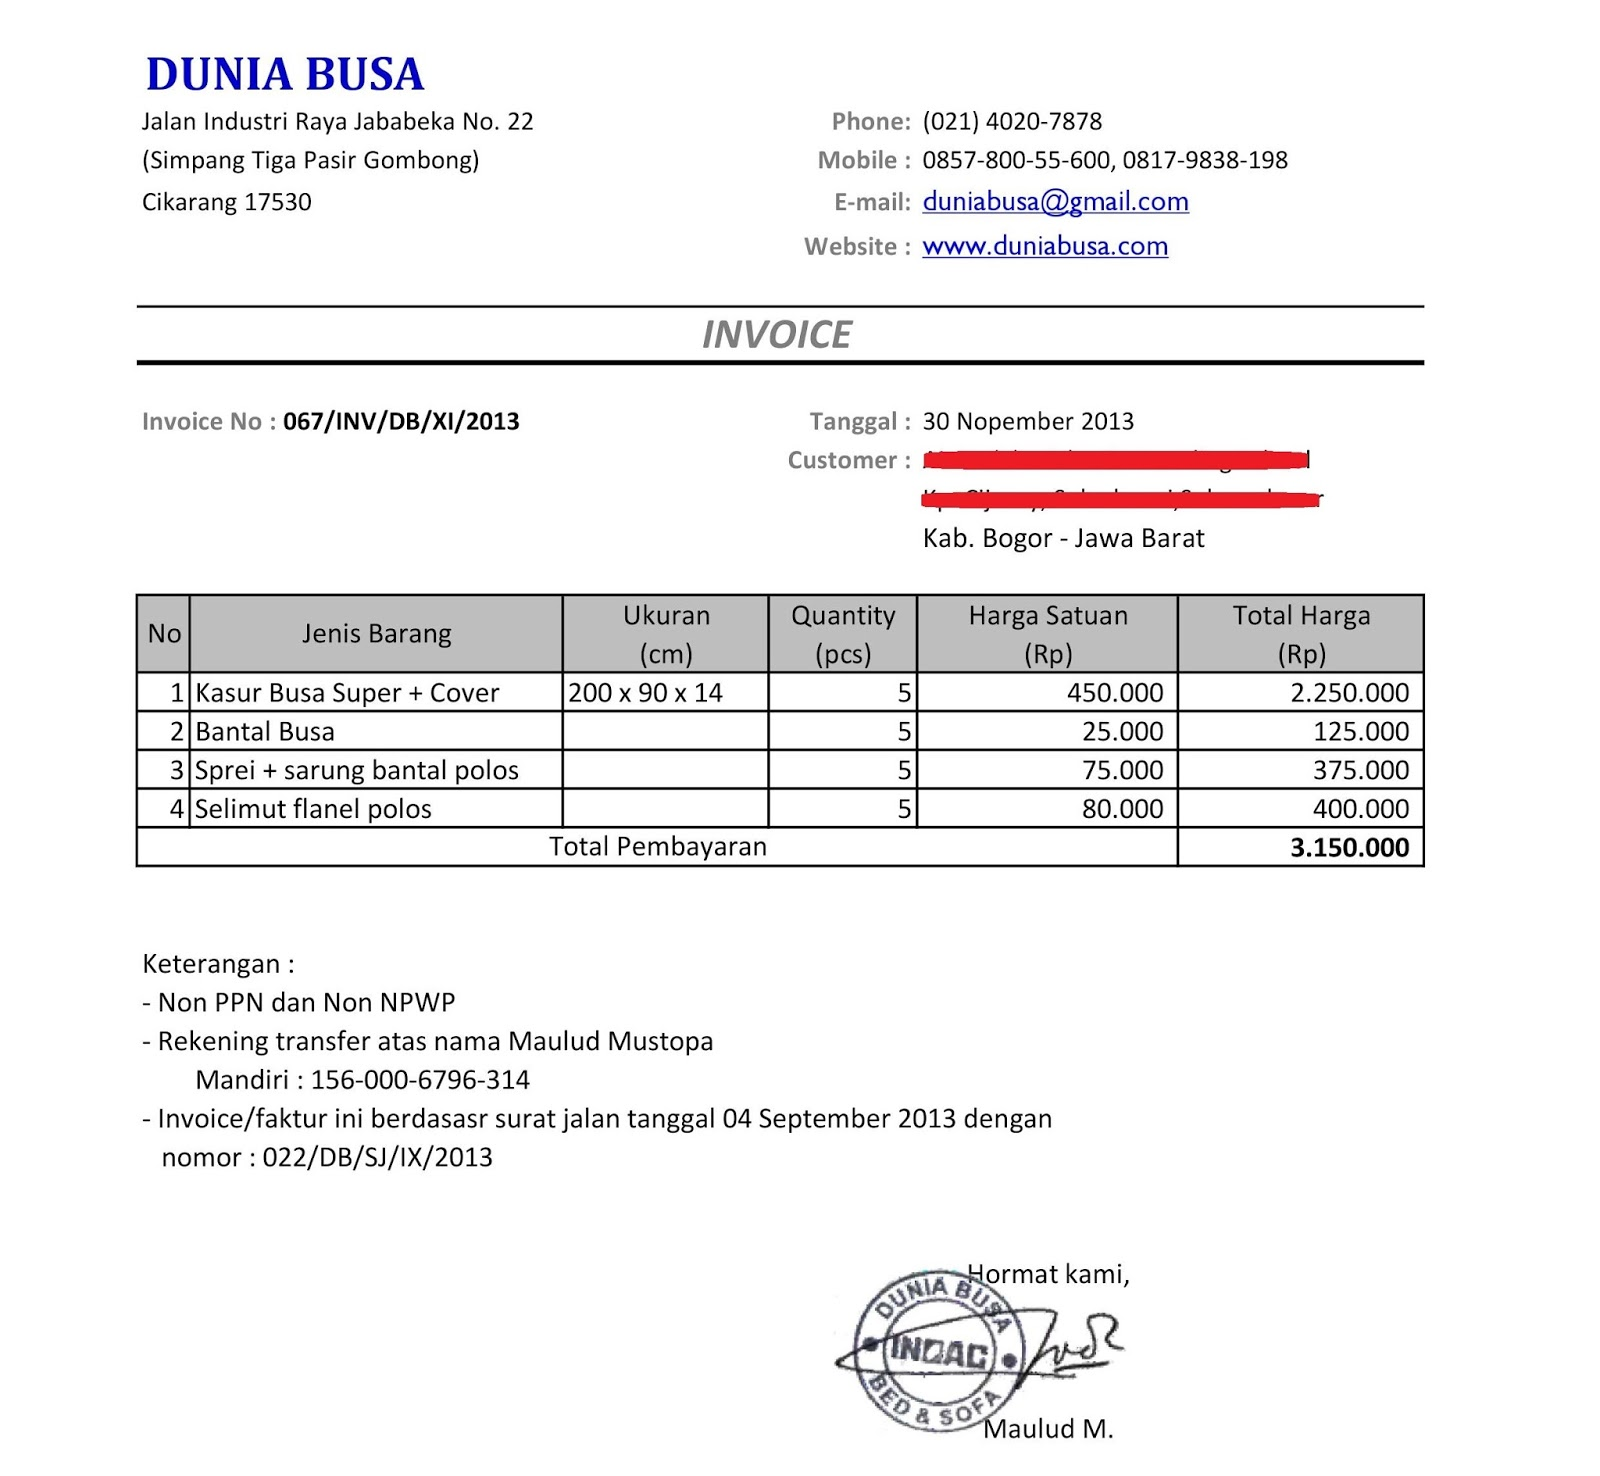 Howcanigettallerus  Outstanding Free Invoice Online  Create Invoice Online  Invoice Template  With Excellent Contoh Format Invoice Atau Surat Tagihan  Brankas Arsip  Free Invoice Online With Cute Wordpress Invoice Plugin Also Toyota Rav Invoice Price In Addition Create A Paypal Invoice And Create And Invoice As Well As Write An Invoice Additionally Mobile Invoice Printer From Sklepco With Howcanigettallerus  Excellent Free Invoice Online  Create Invoice Online  Invoice Template  With Cute Contoh Format Invoice Atau Surat Tagihan  Brankas Arsip  Free Invoice Online And Outstanding Wordpress Invoice Plugin Also Toyota Rav Invoice Price In Addition Create A Paypal Invoice From Sklepco